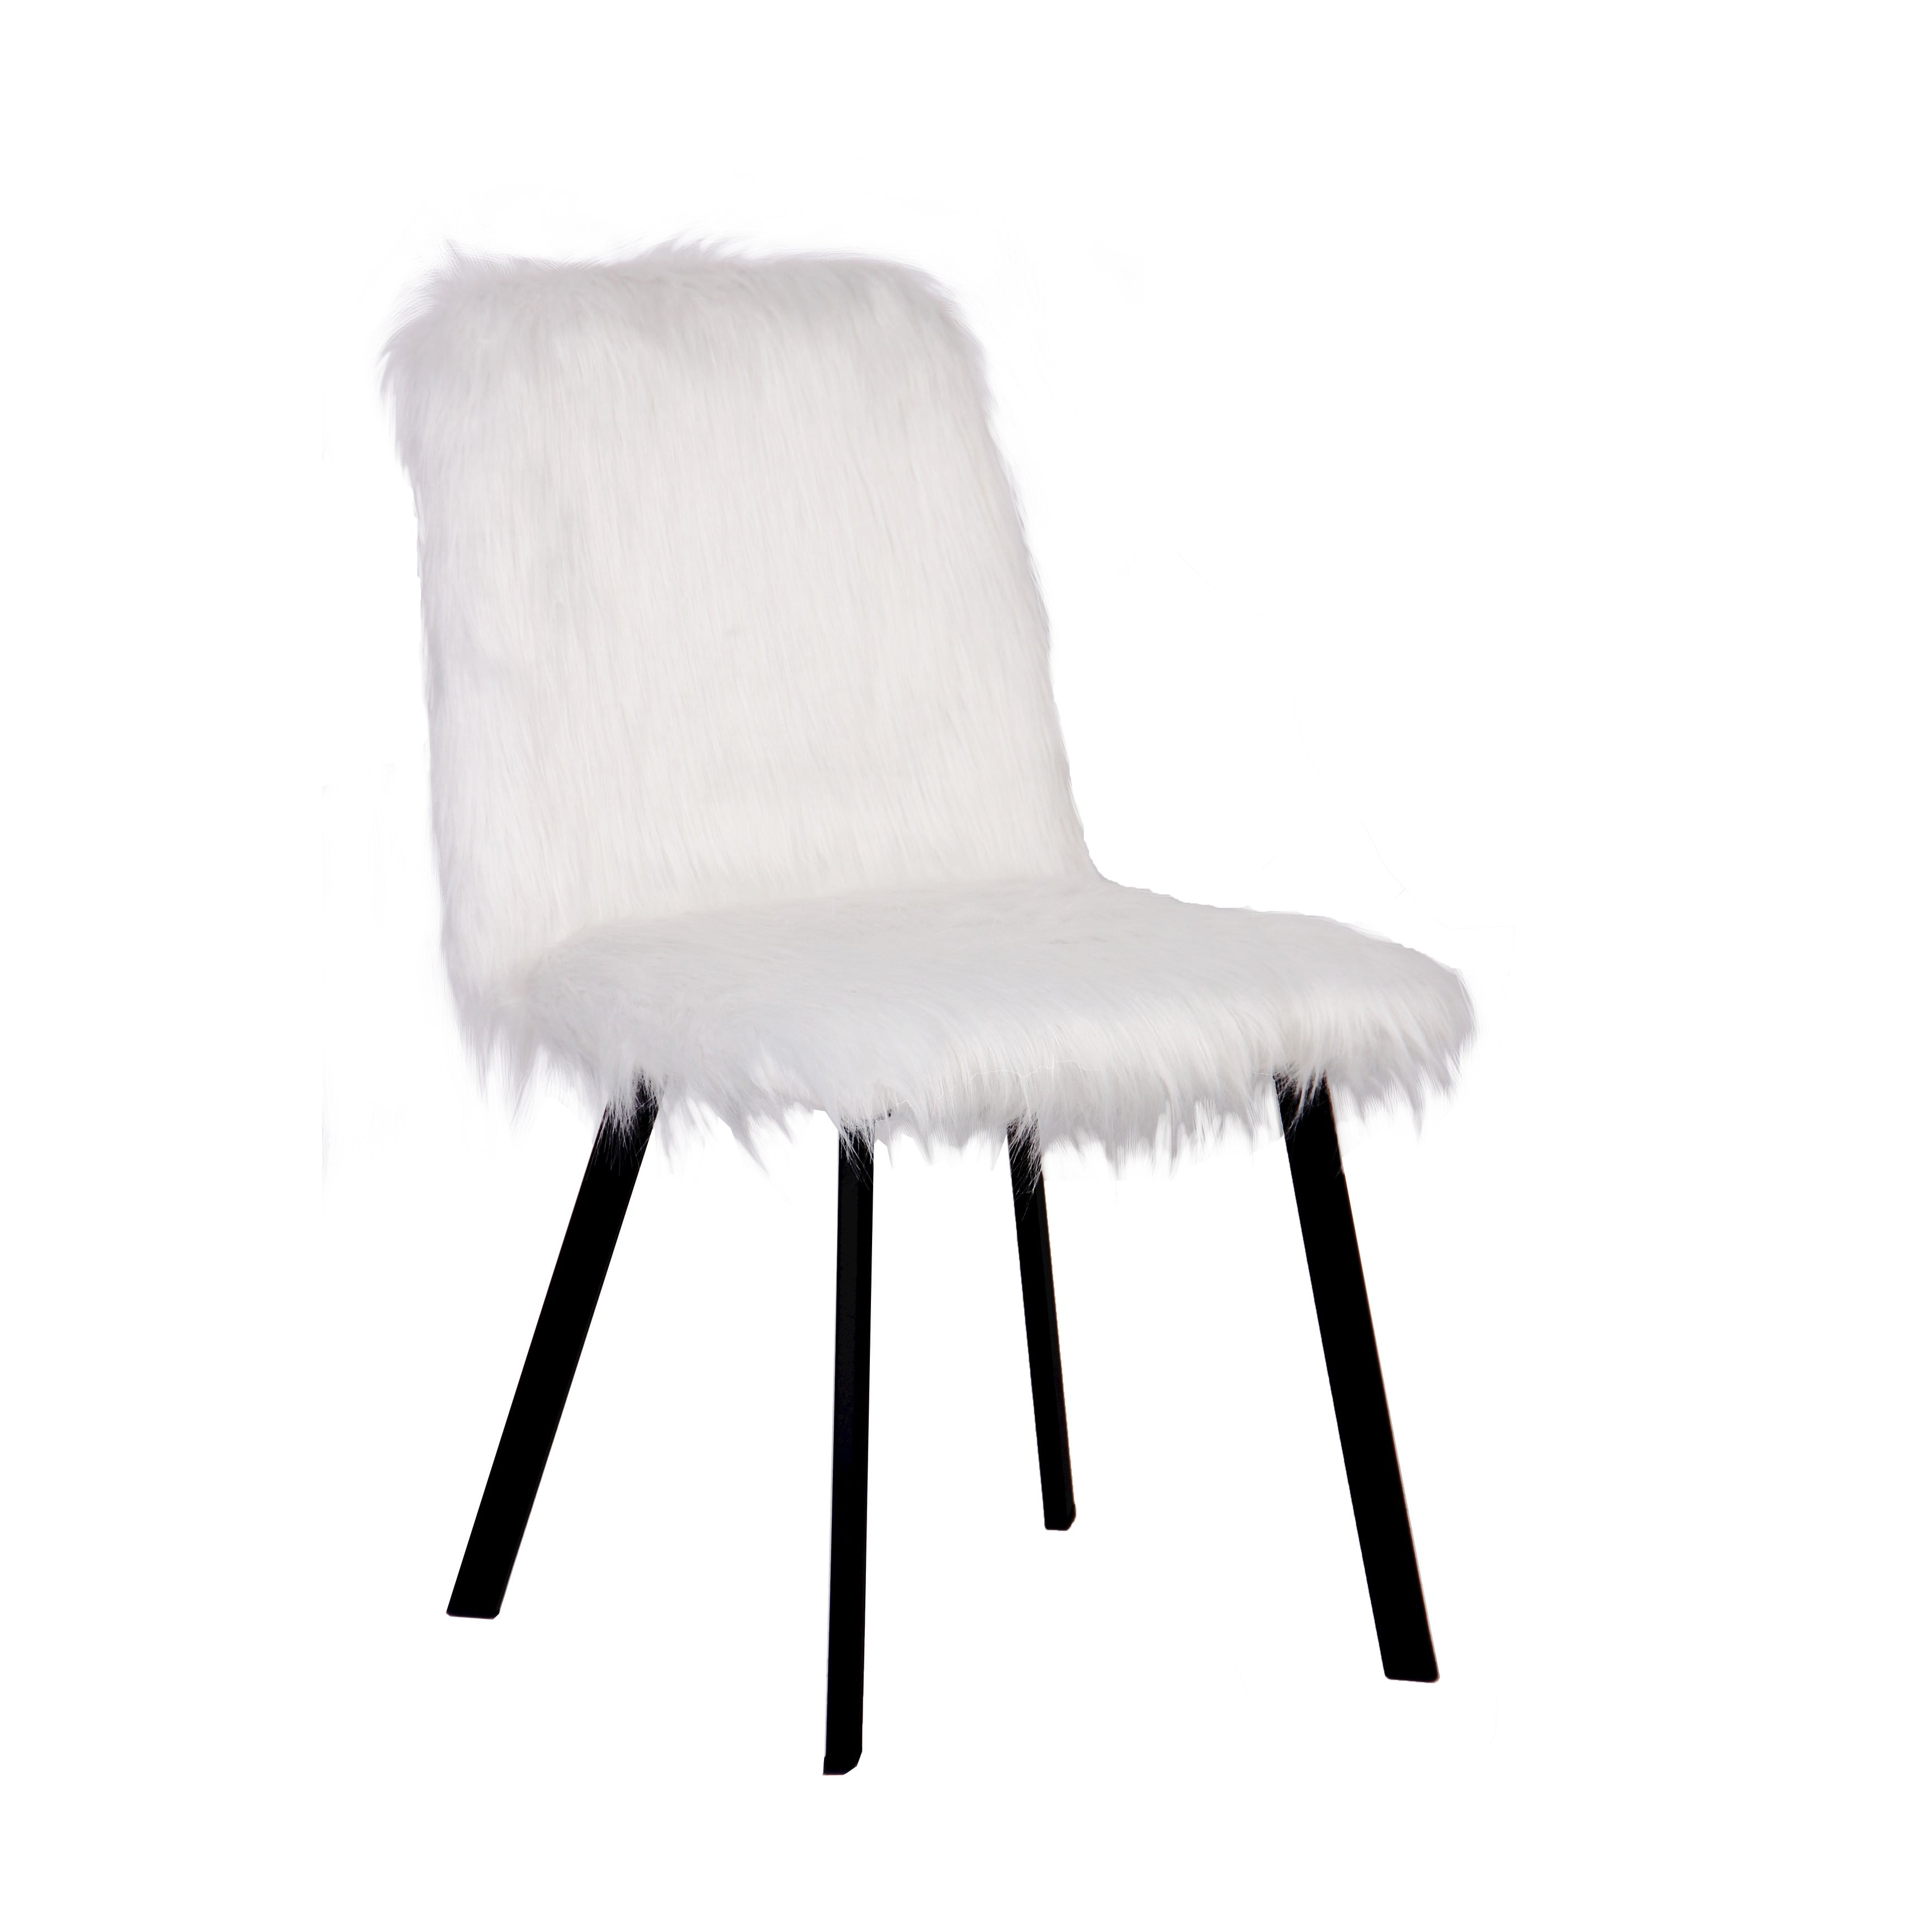 Image of: Shop Black Friday Deals On Ace Casual Furniture Linnea Wooden Desk Chair With Faux Fur Seat Cover White And Black On Sale Overstock 32035187